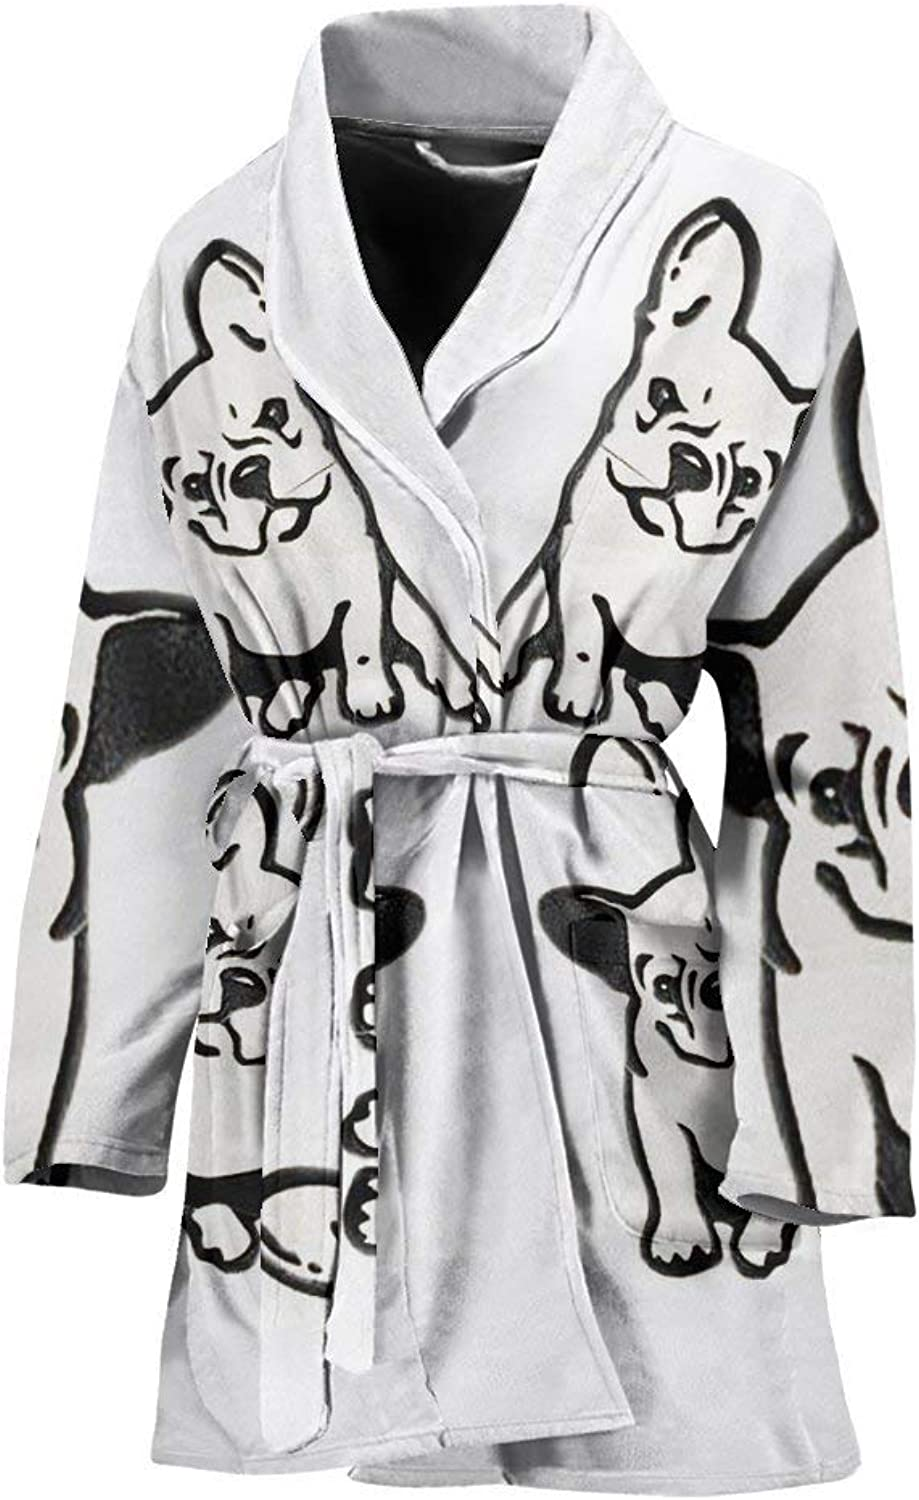 Deruj French Bulldog Art Print Women's Bath Robe